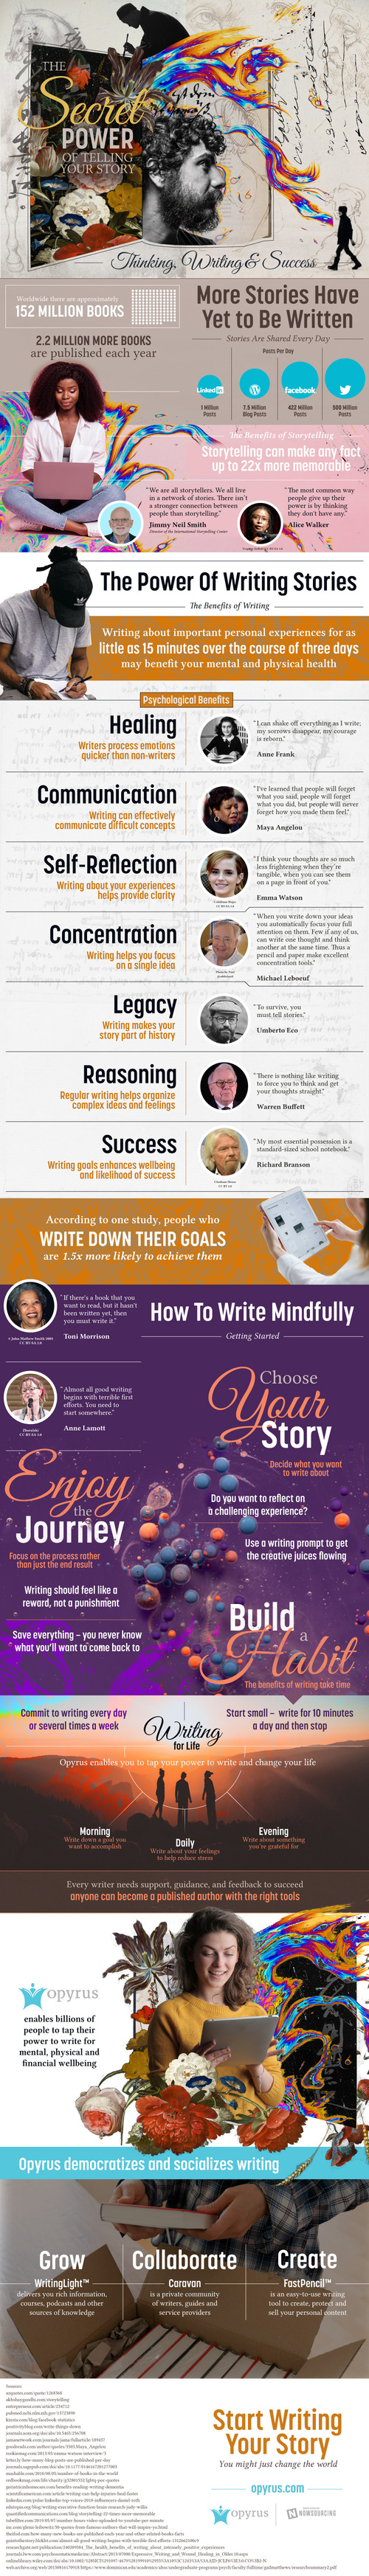 Learning how to harness your writing skills can impact other... via Brian Wallace